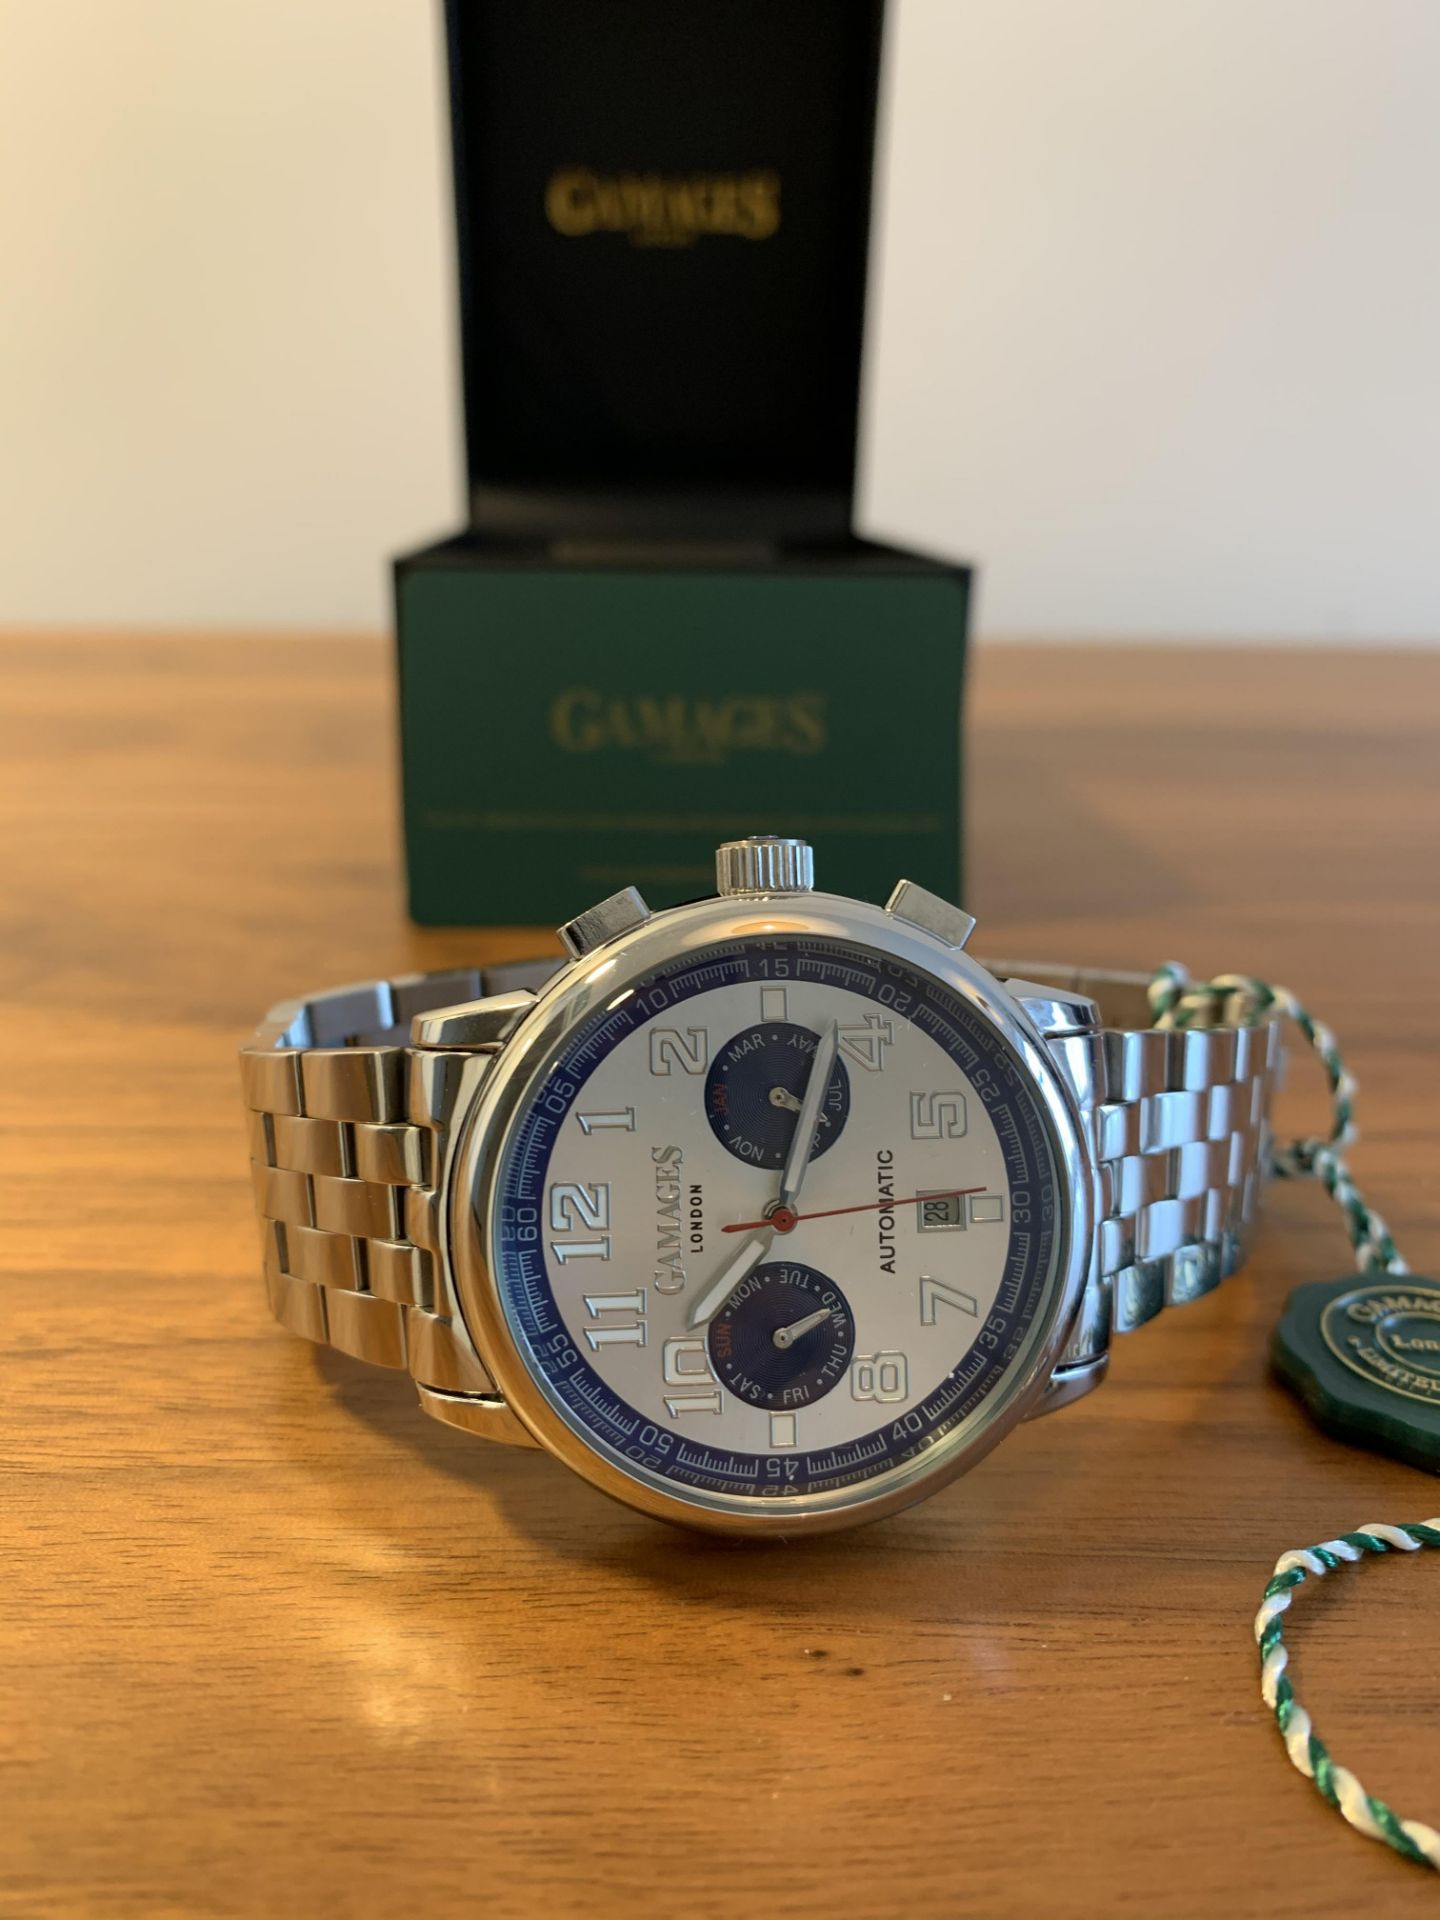 Limited Edition Hand Assembled Gamages Triple Date Automatic Steel – 5 Year Warranty & Free Delivery - Image 4 of 5